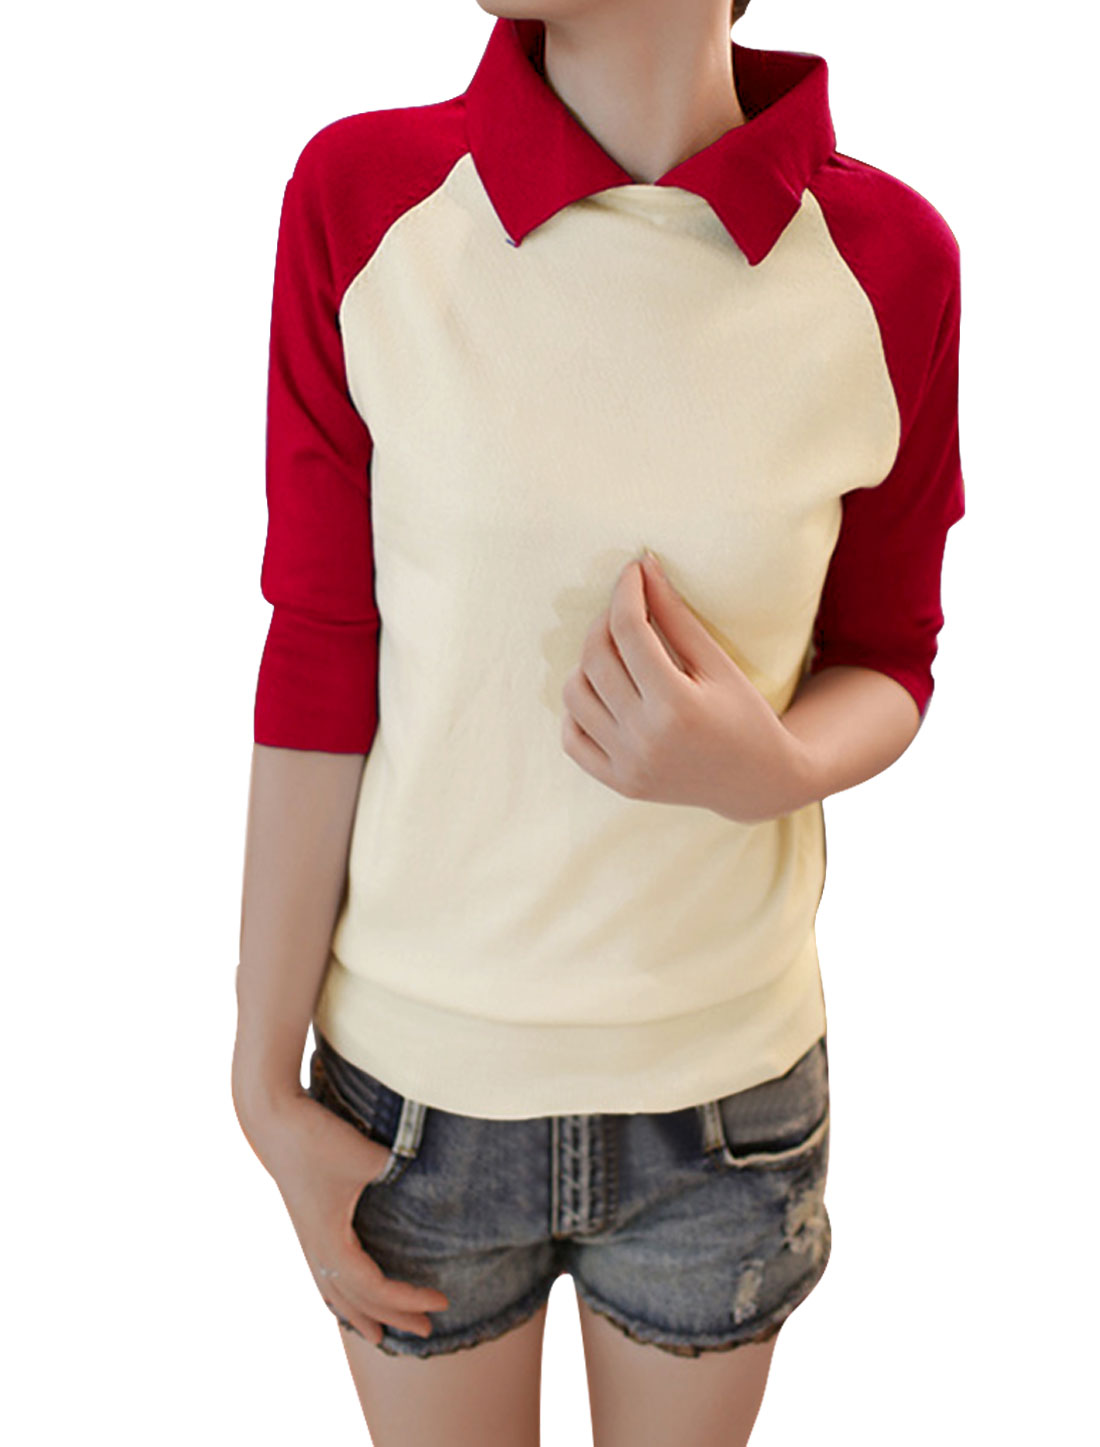 Women Bright Red Color Block Turn Down Collar Casual Knit Shirt XS